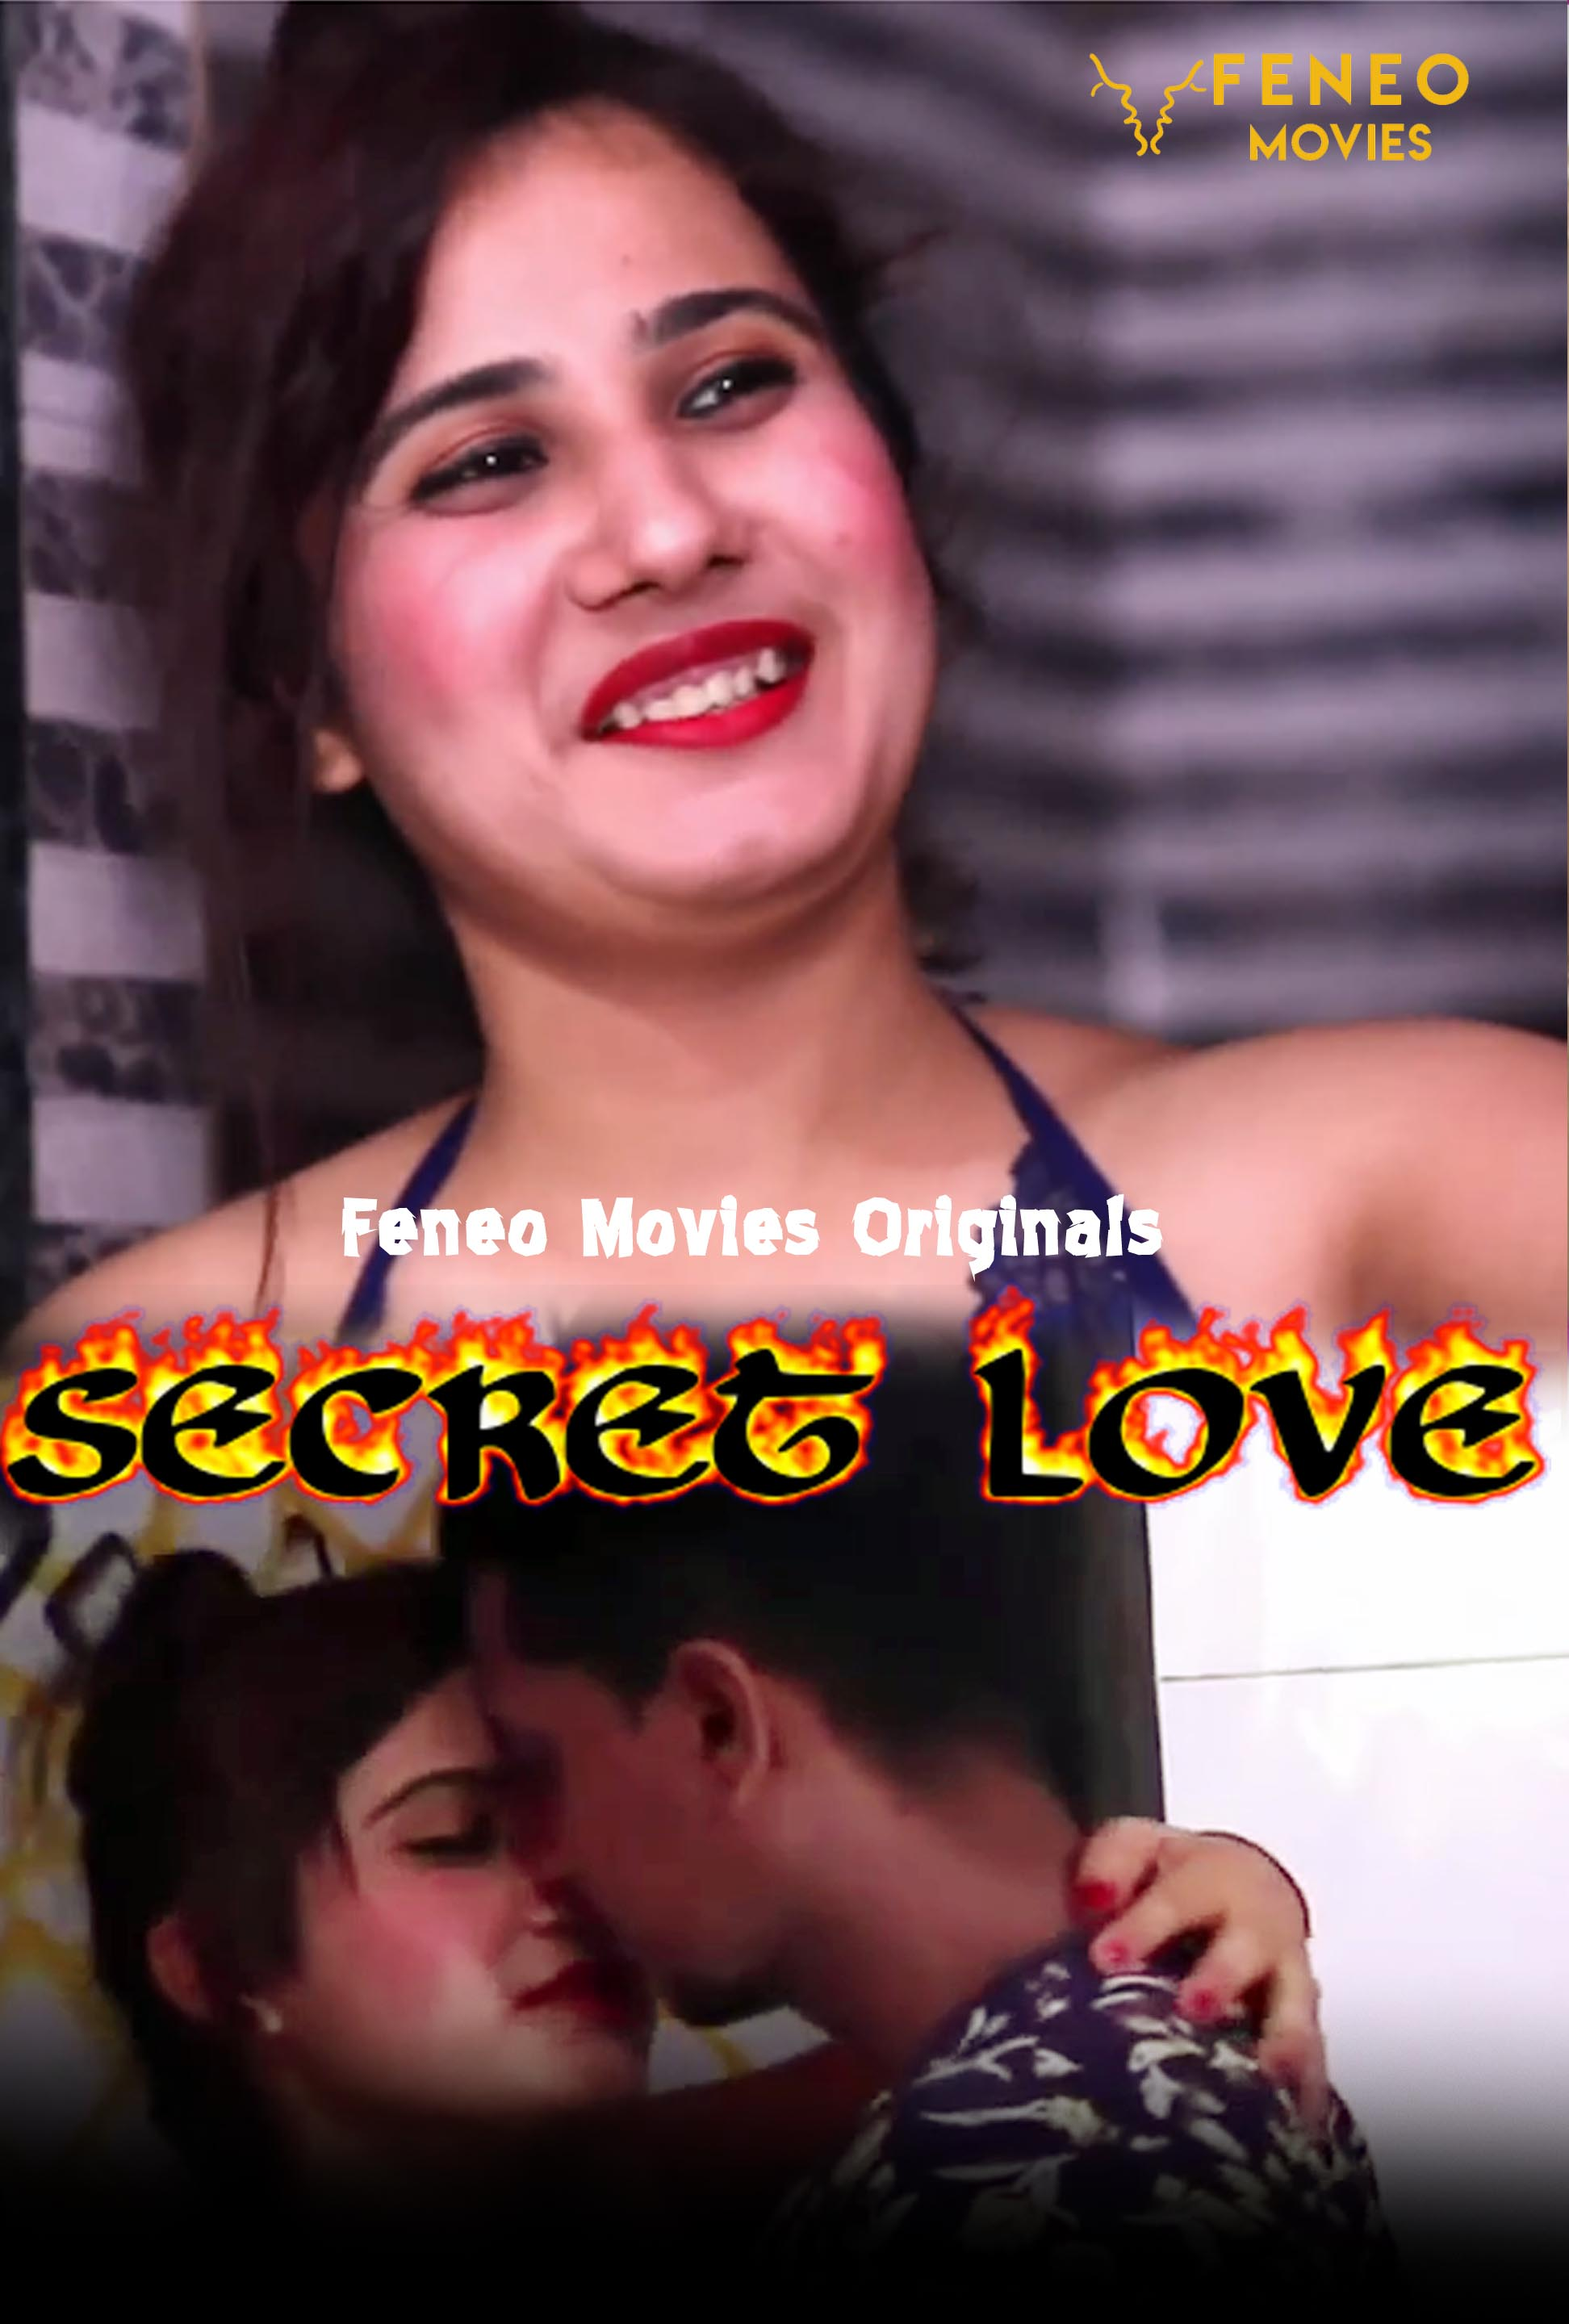 Secret Love 2020 S01E02 Hindi Feneomovies Original Web Series 720p HDRip 250MB Download